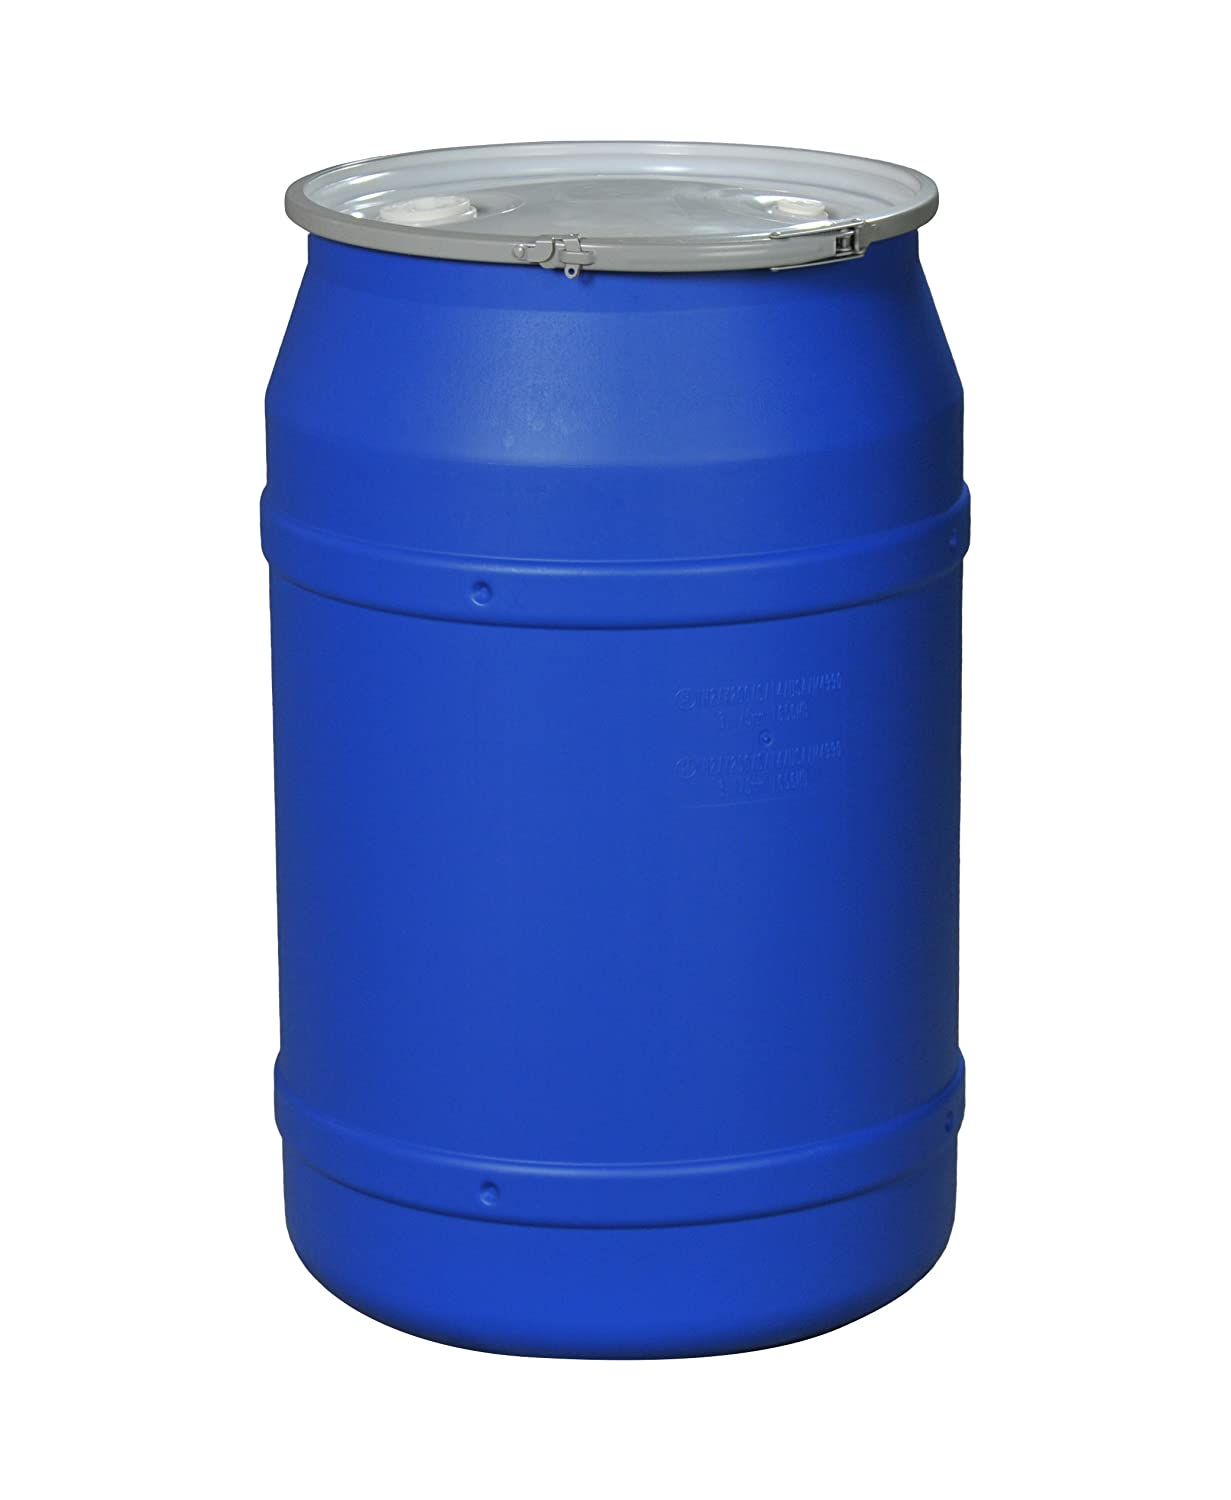 Eagle 1656MBBG Straight Sided Drum With Metal Band And Plastic Lid With  Bungs, 55 Gal, Blue: Amazon.com: Industrial U0026 Scientific